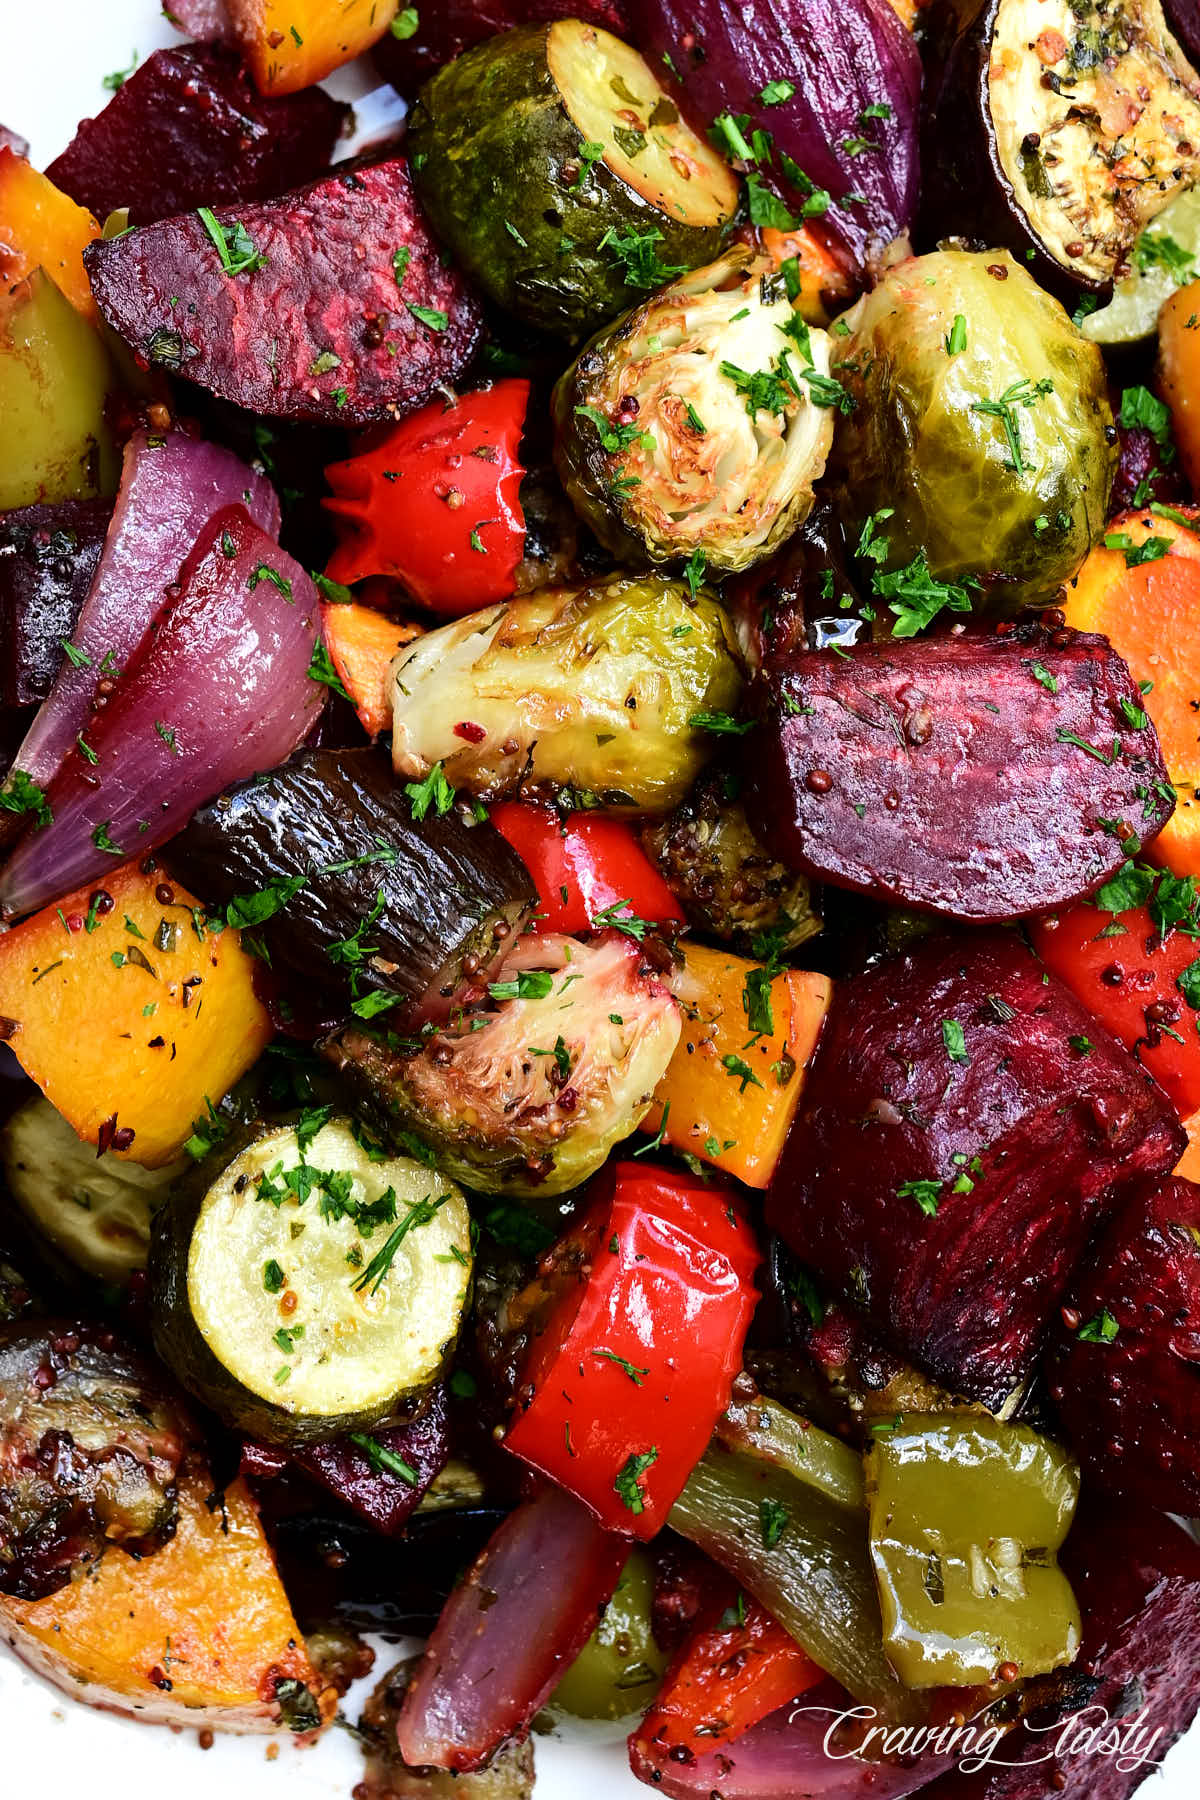 Perfectly cut, bite size roasted vegetables sprinkled with fresh herbs.